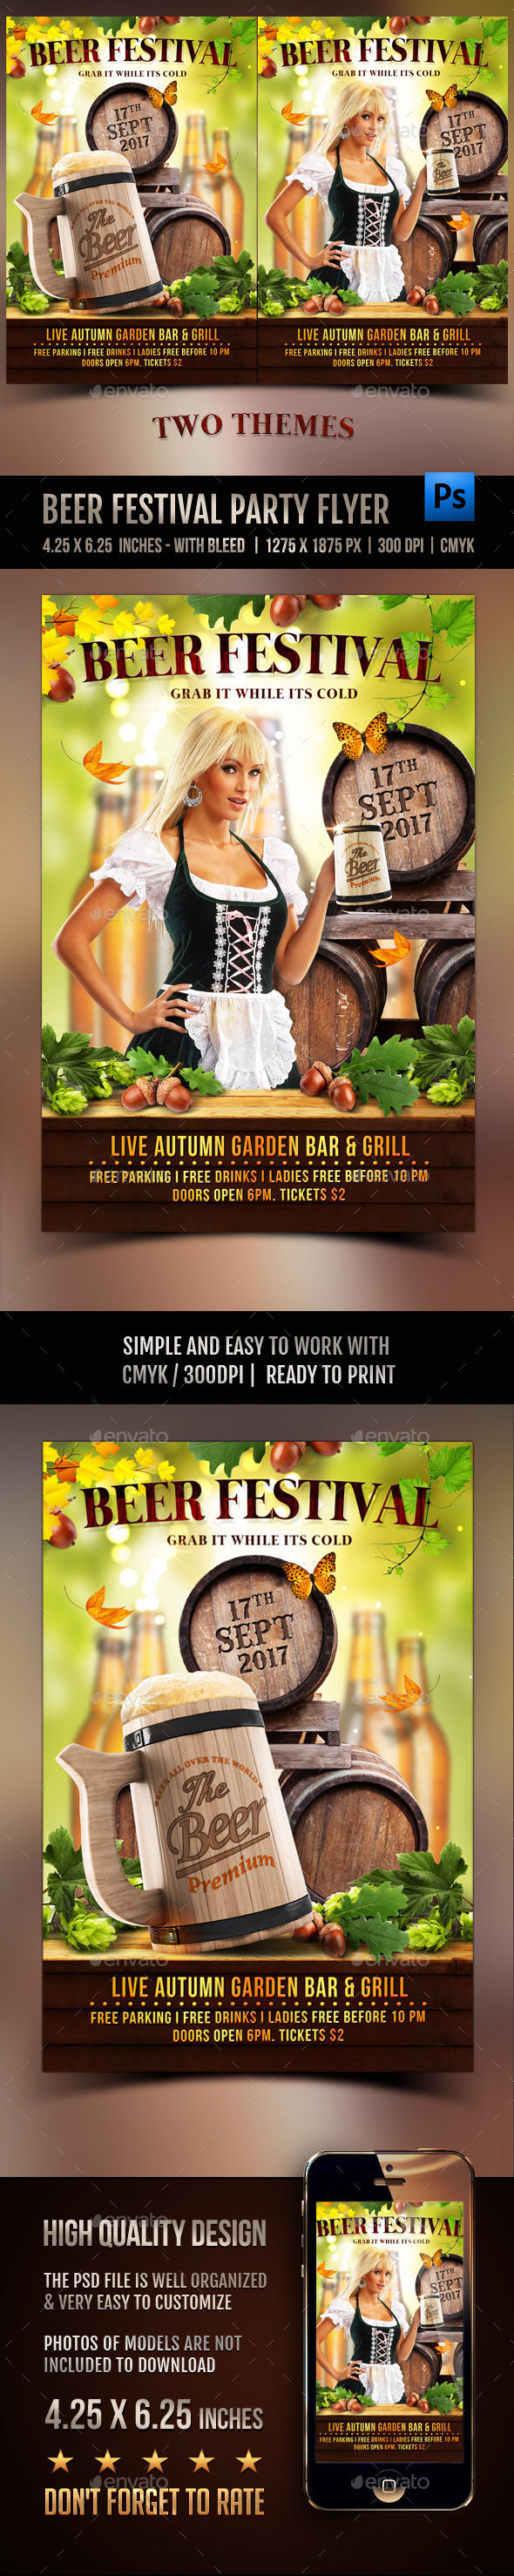 Beer Festival Party Flyer - Clubs & Parties Events